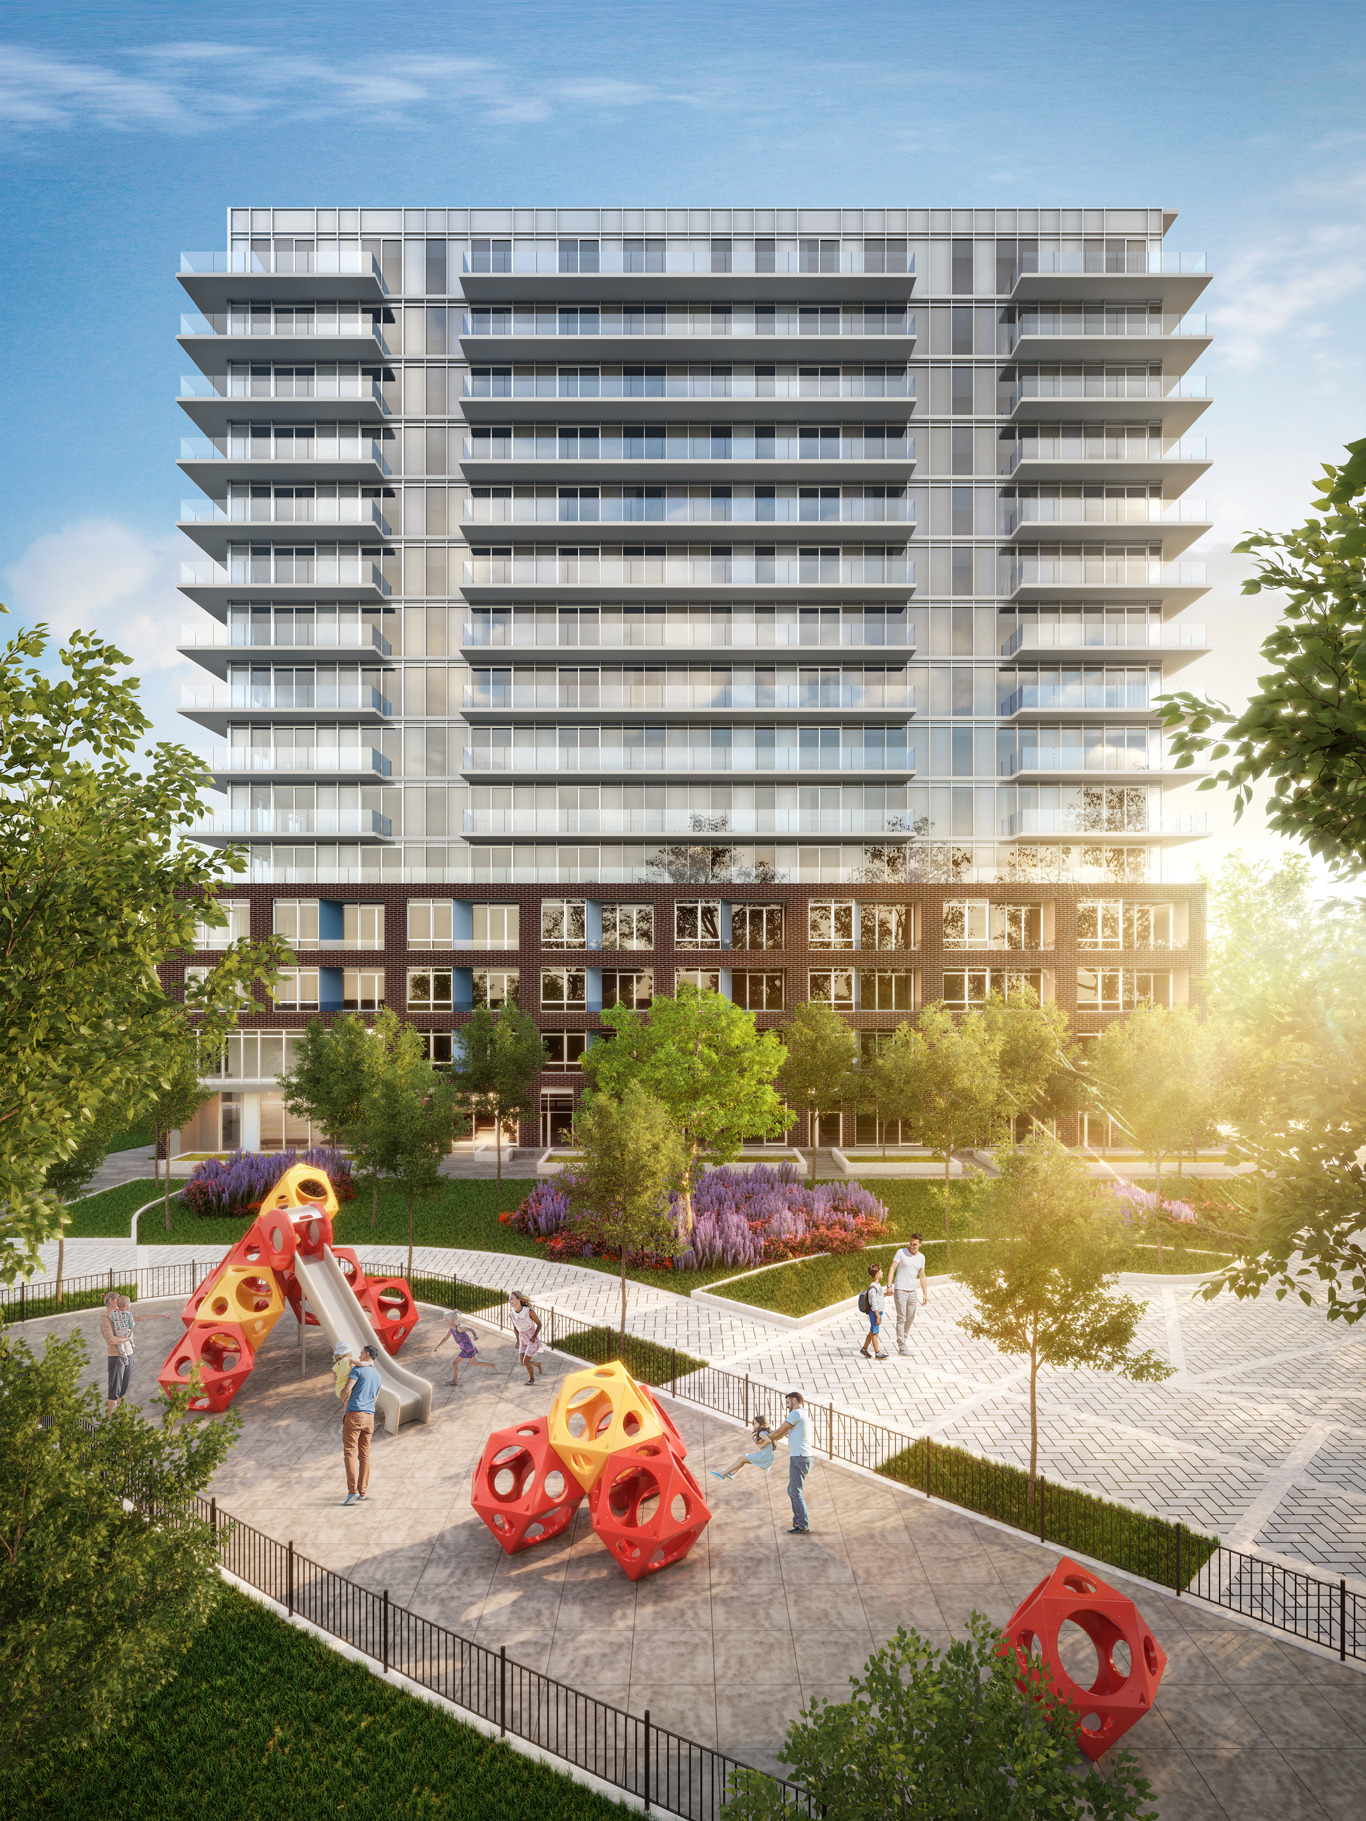 The Davis is just the type of condo community Newmarket needs